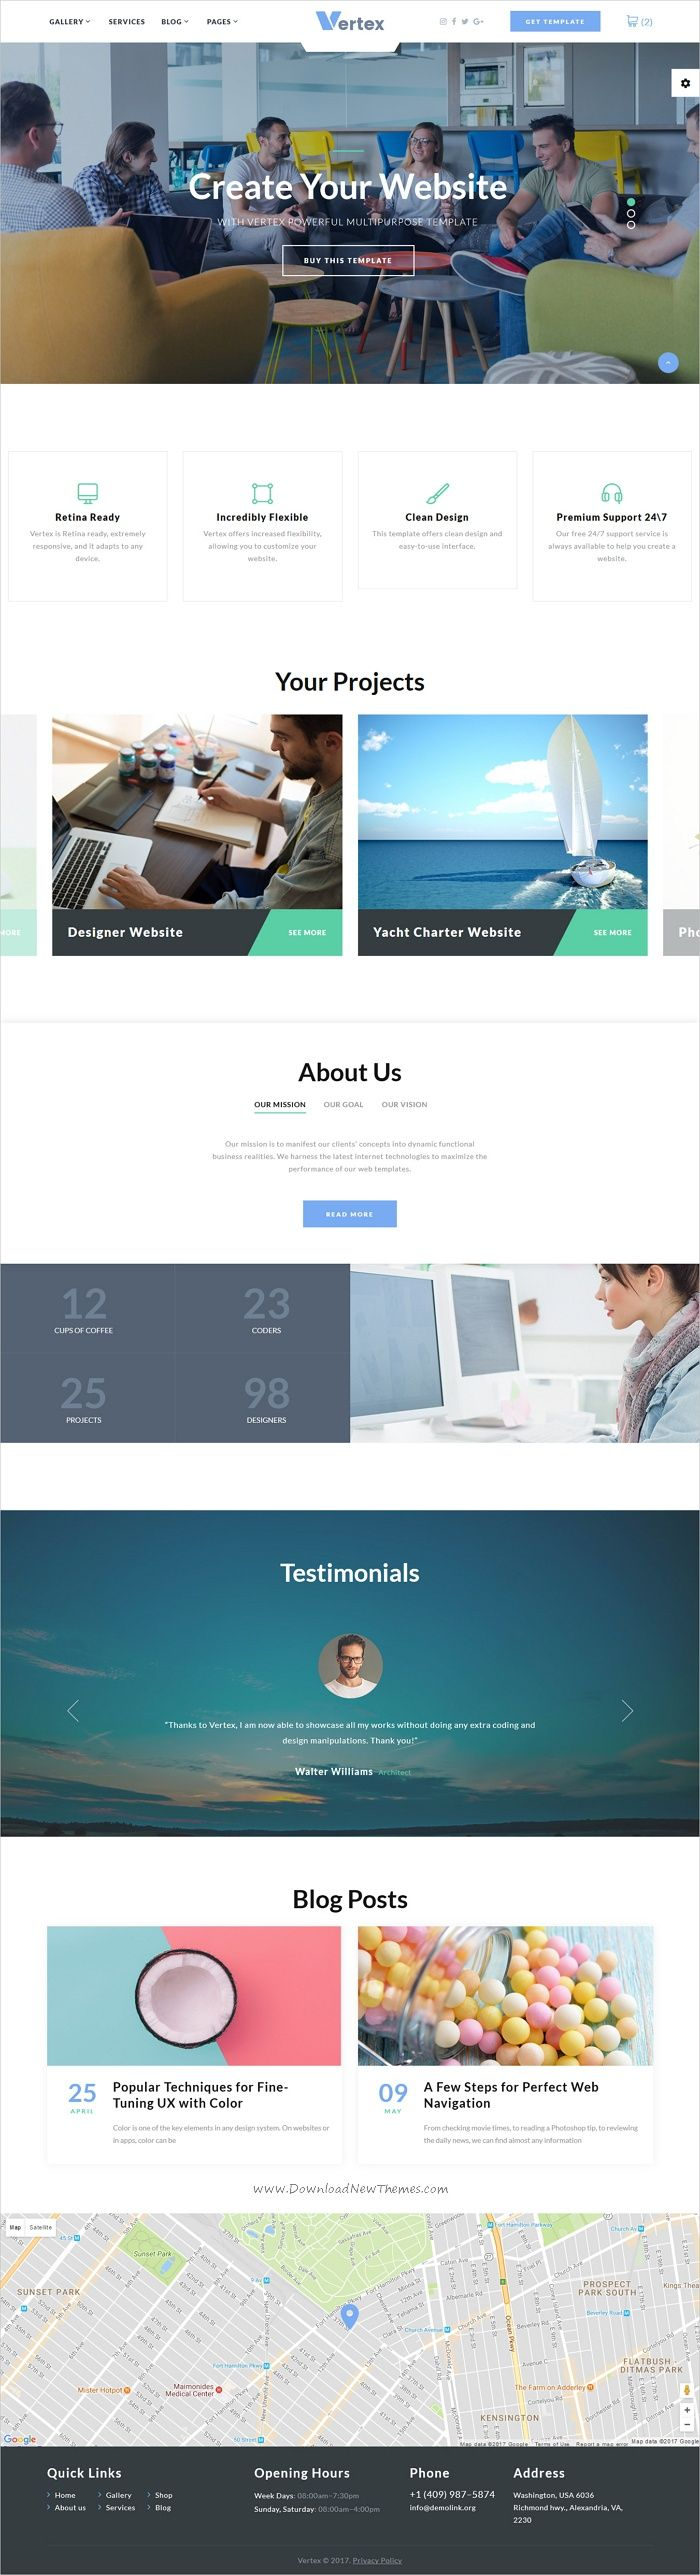 Vertex is clean and modern design responsive multipurpose #HTML5 template for stunning #corporate website with 12+ niche homepage layouts download now➩ https://themeforest.net/item/vertex-multipage-business-website-template/19795017?ref=Datasata